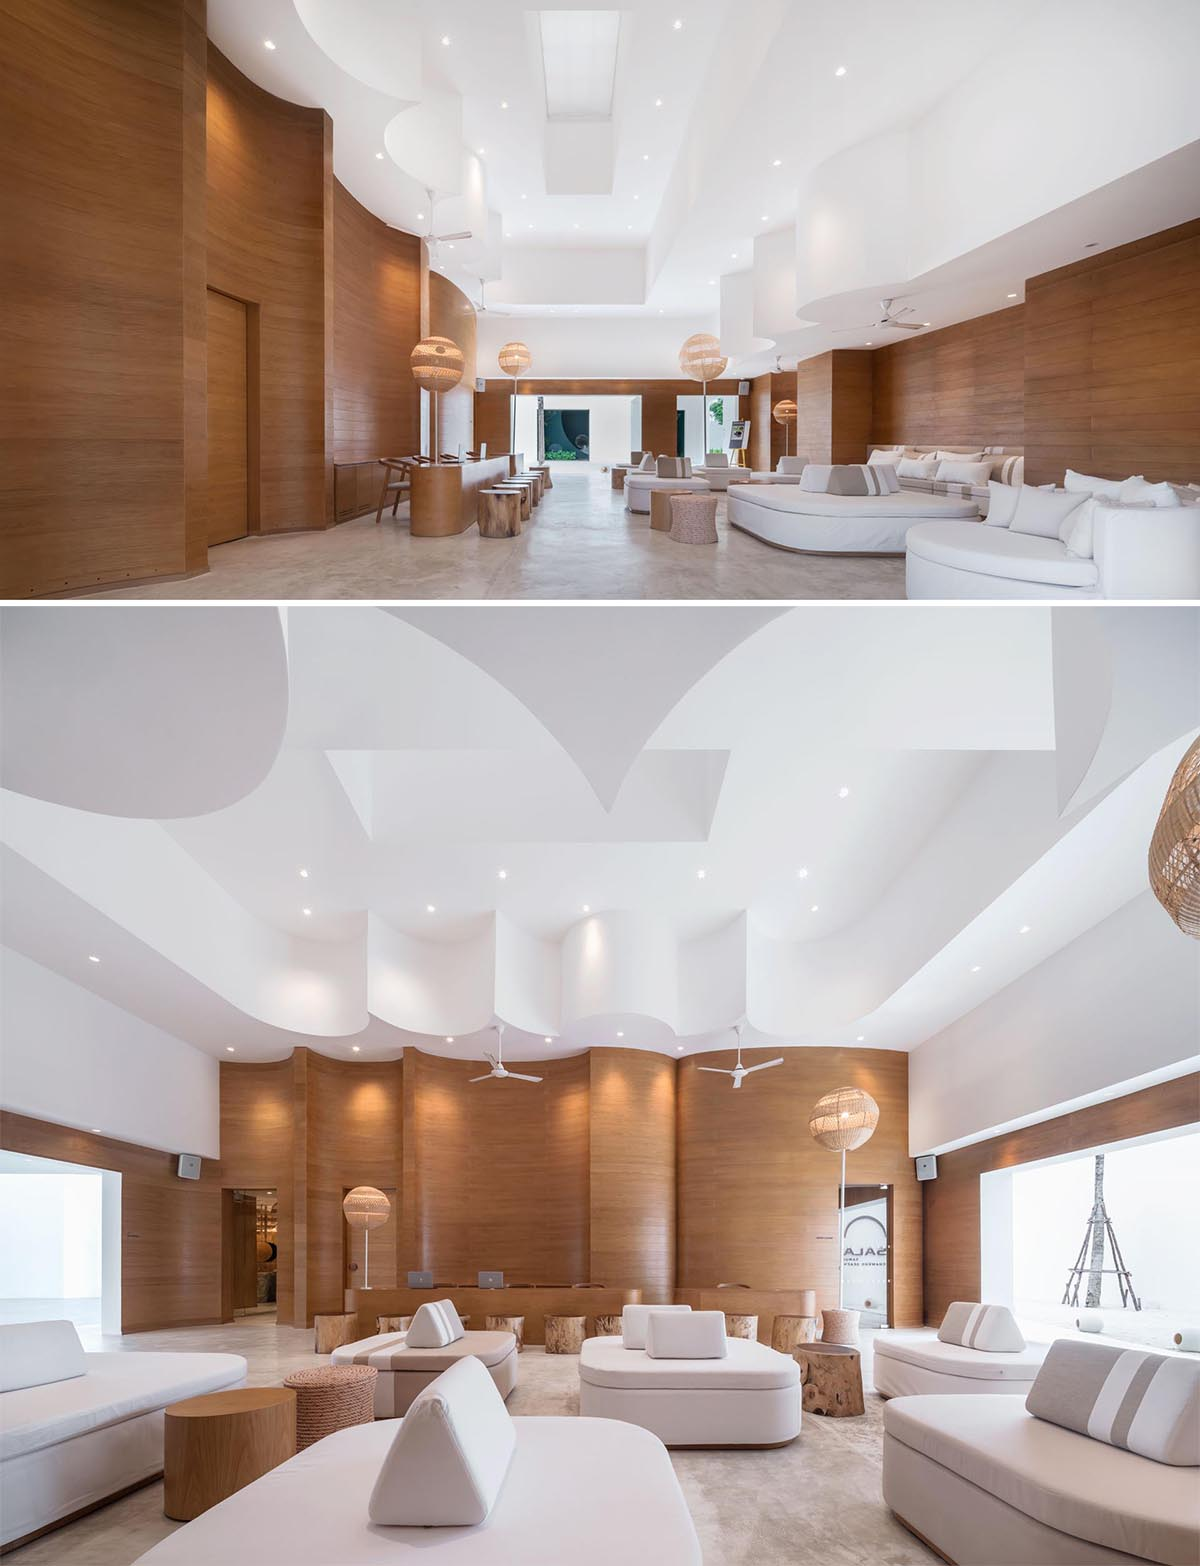 A modern hotel lobby with sculptural wood walls, woven lighting, and round furniture.